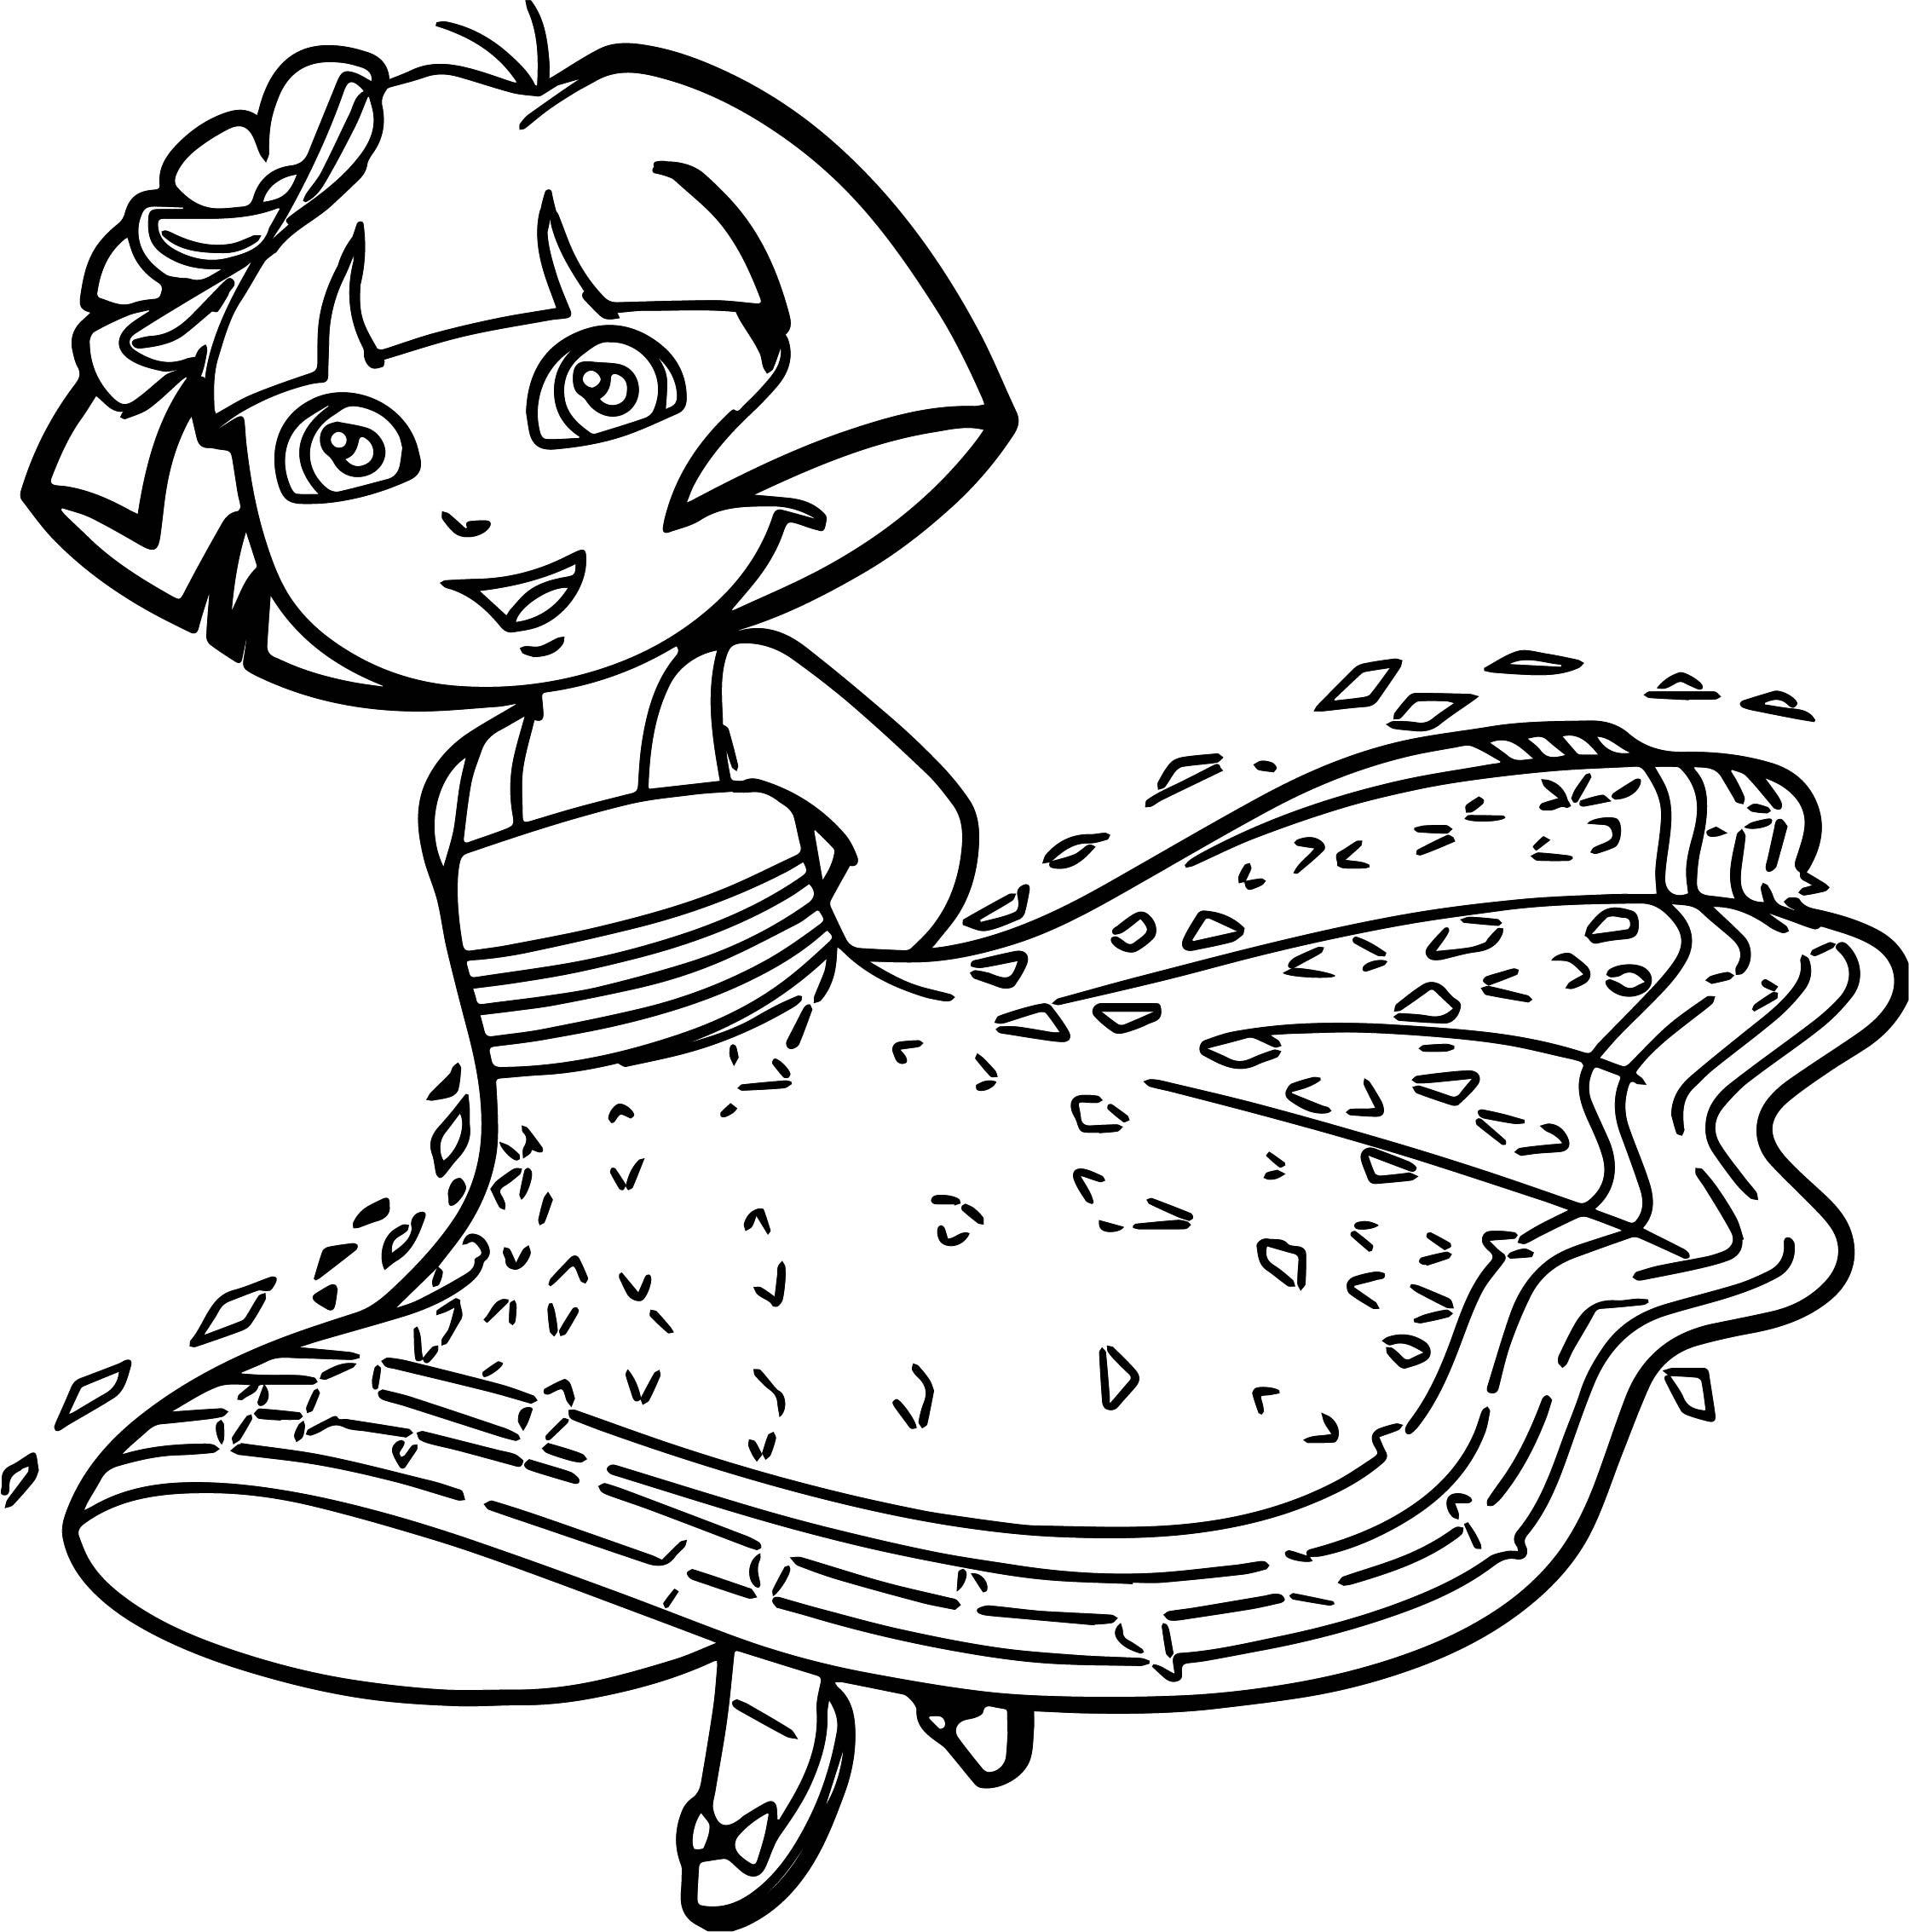 dora the explorer princess coloring pages top 25 awesome dora coloring pages your toddler will love pages the explorer coloring princess dora